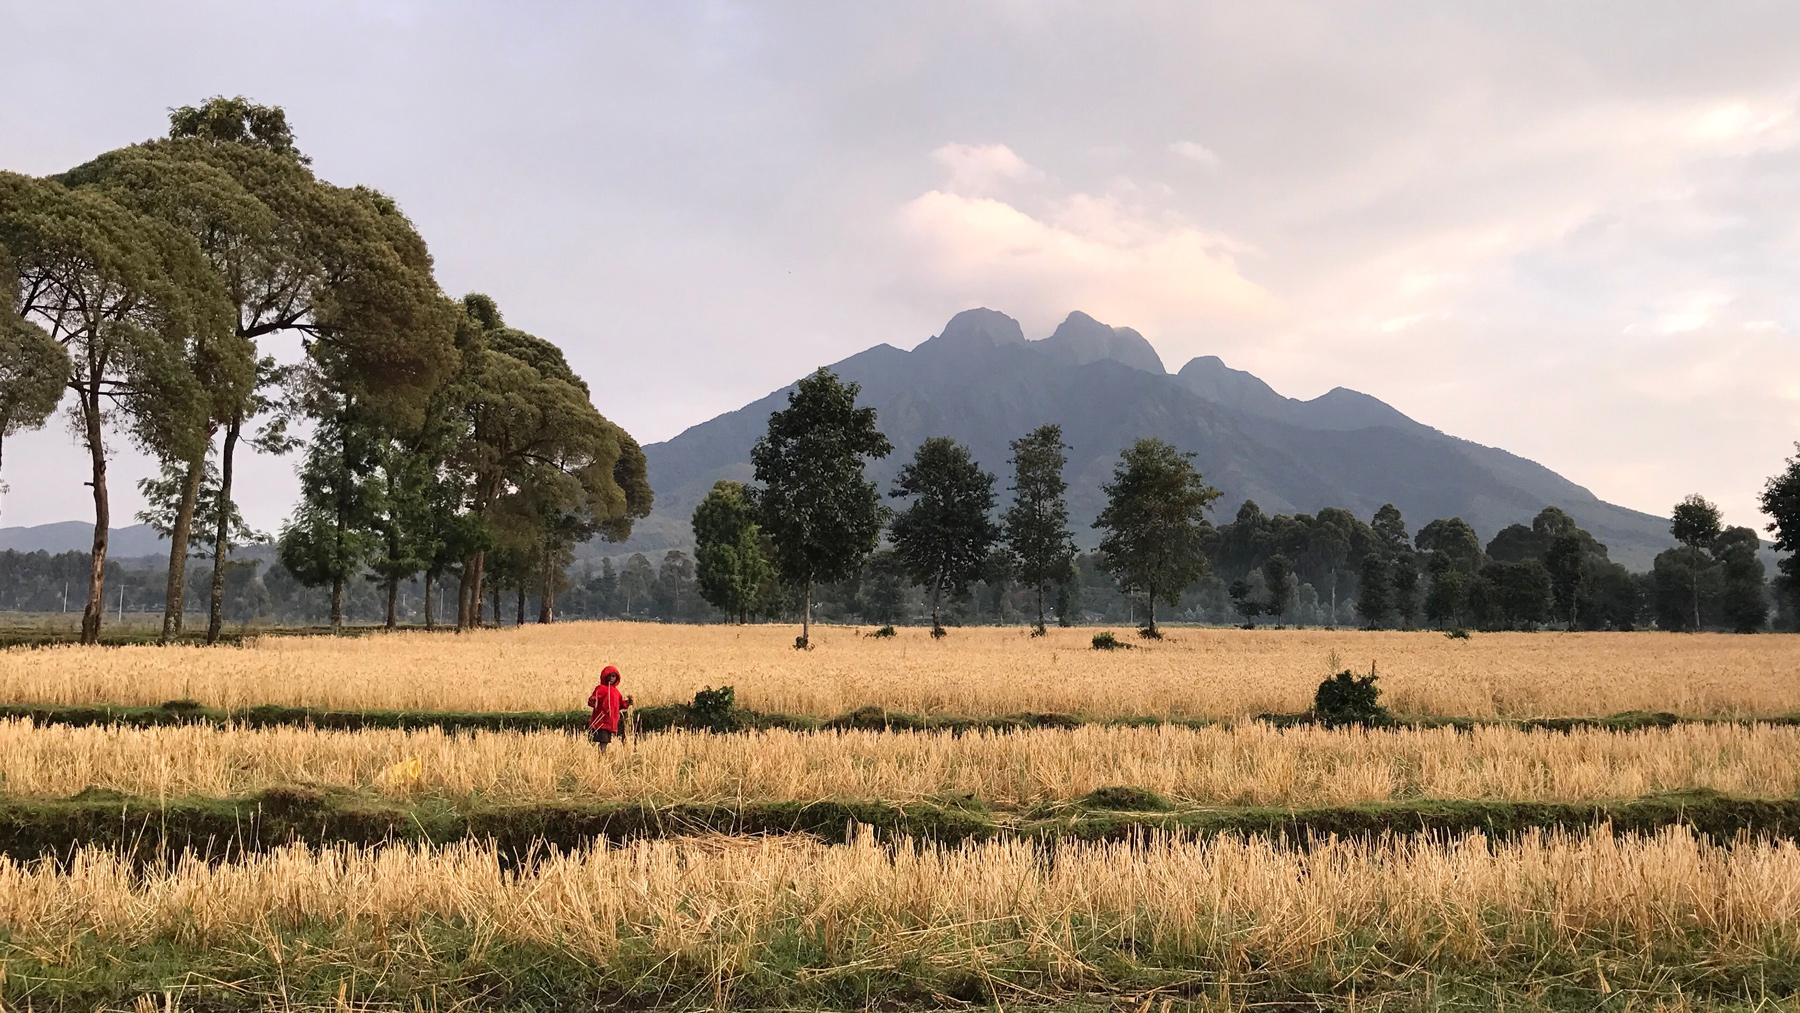 """Early morning in the wheat fields at the foot of Mt. Sabyinyo, one of the few habitats for mountain gorillas. Sabyinyo is aptly named, as it means """"teeth"""" in the local language.Shot on iPhone 7 Plus in Volcanoes National Park, Rwanda."""